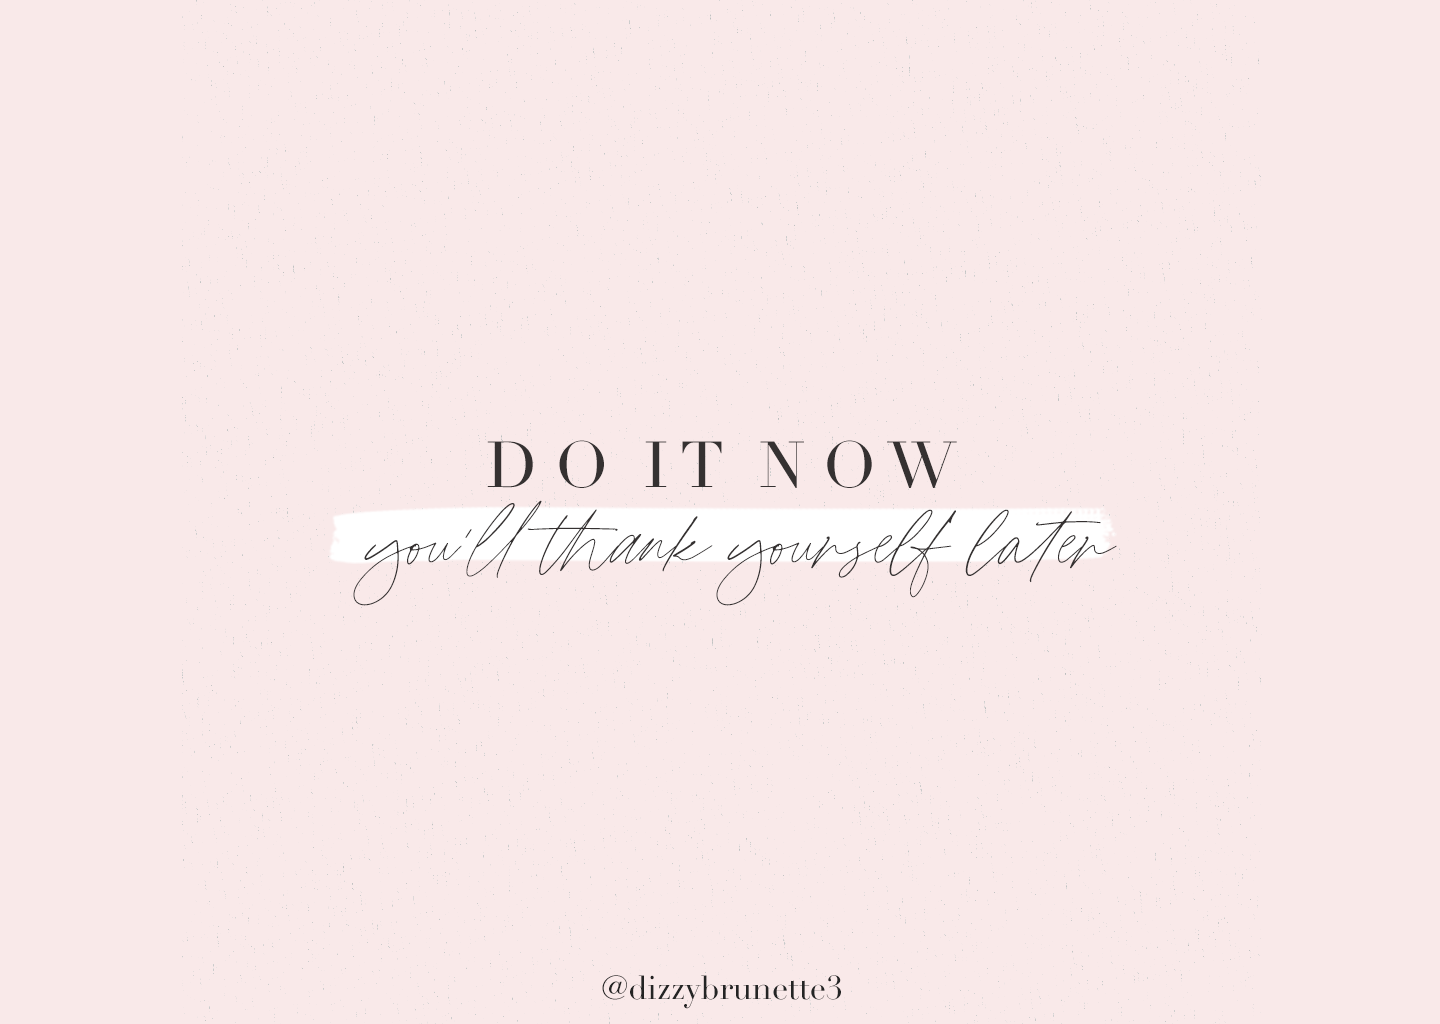 Free Motivational Desktop Wallpapers For January 2020 Corrie Bromfield Laptop Wallpaper Quotes Desktop Wallpaper Macbook Cute Desktop Wallpaper